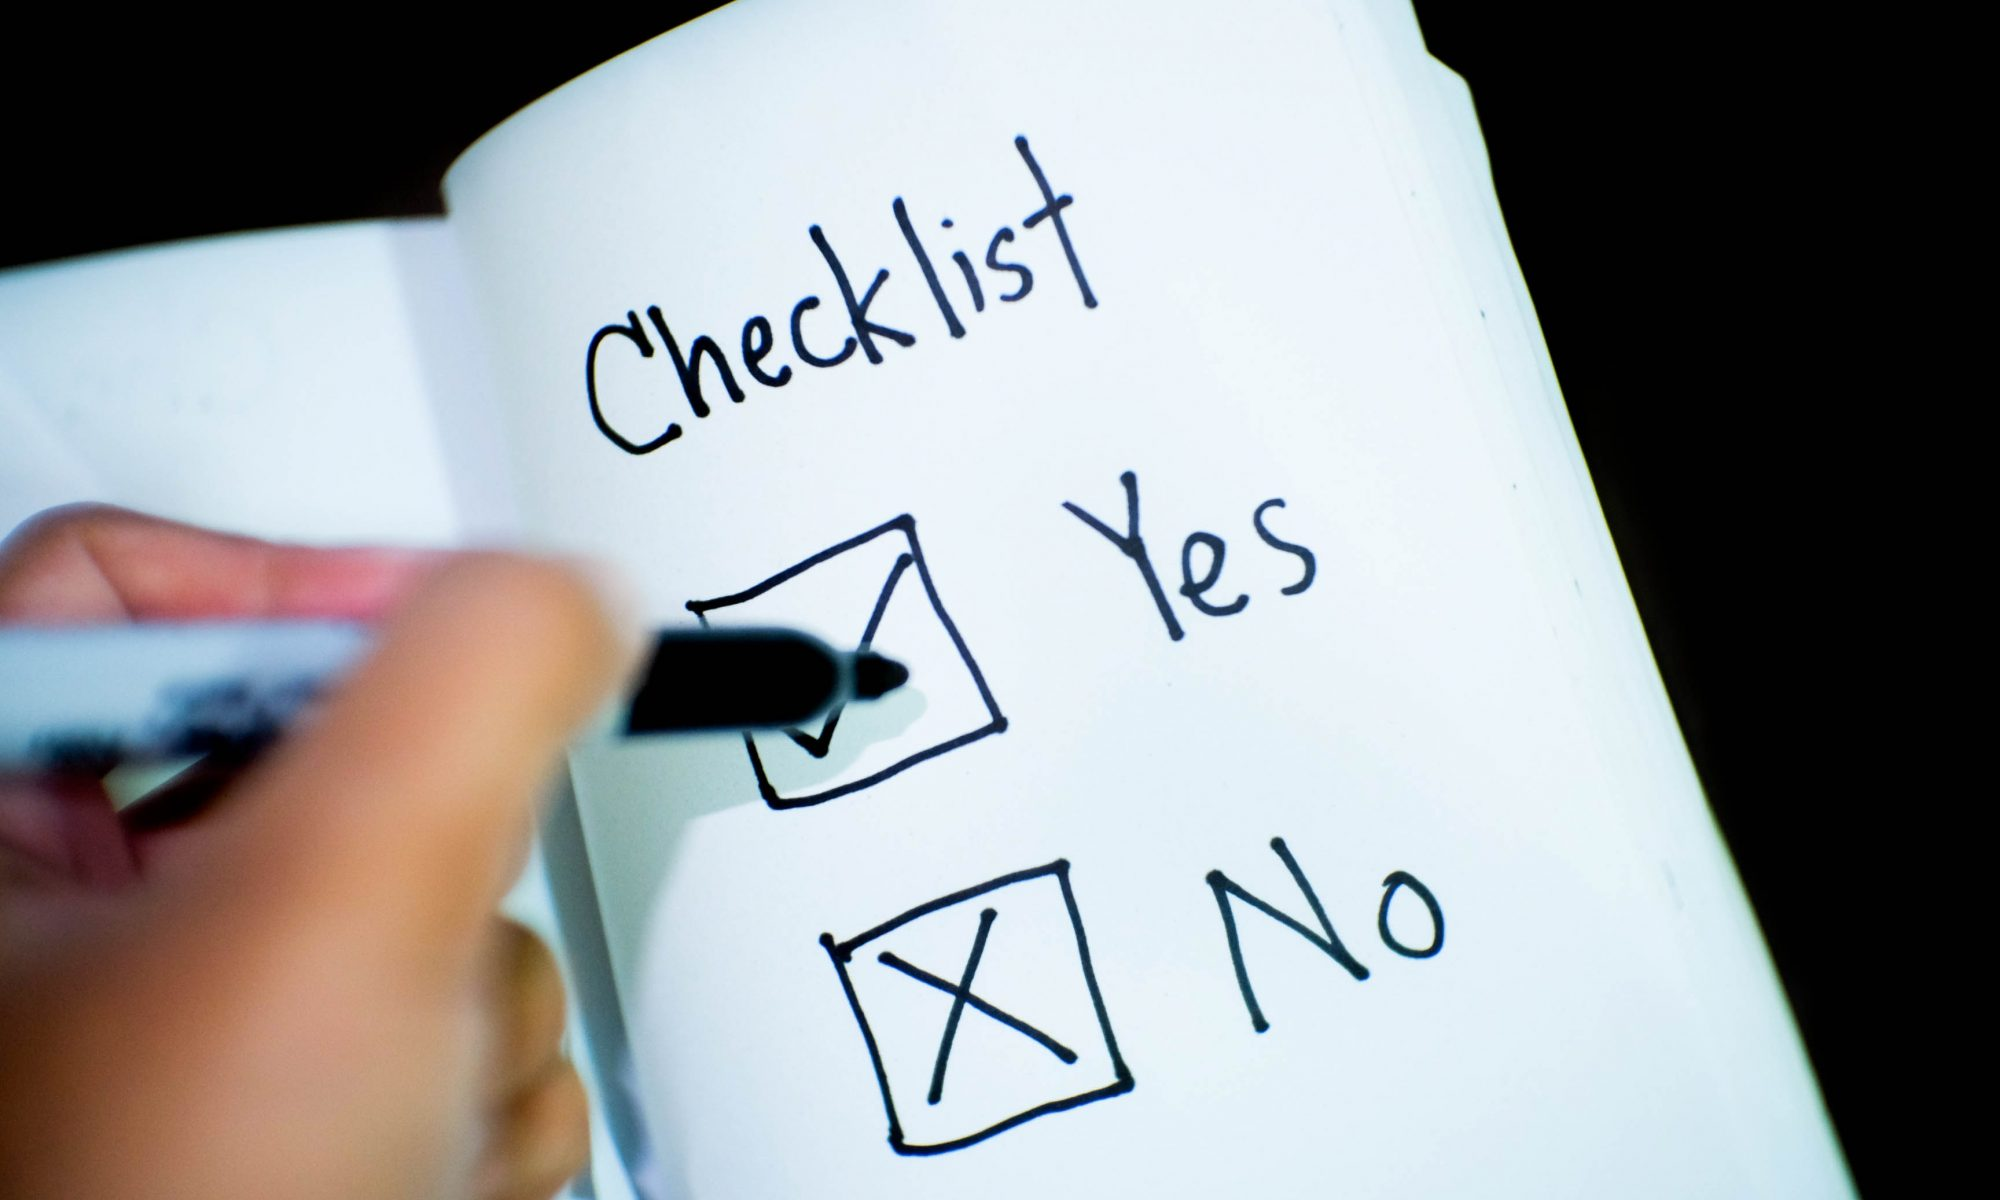 Completing a checklist